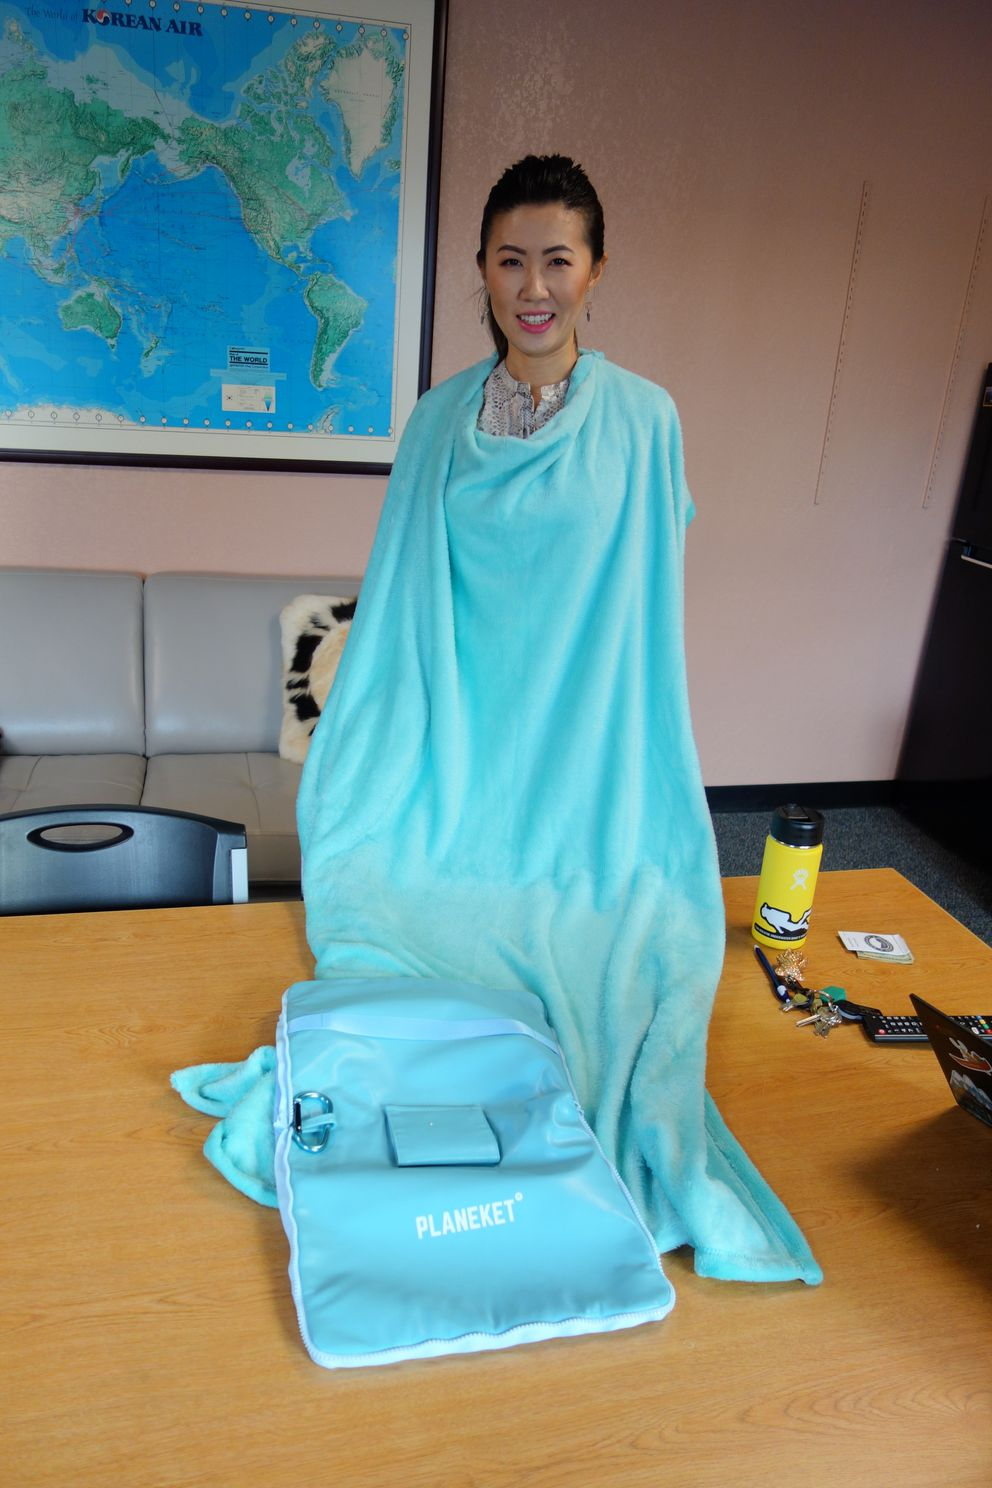 Jin Chen shows off the fluffy blanket in the Planeket, which fastens at the top. (Photo by Scott McMurren)